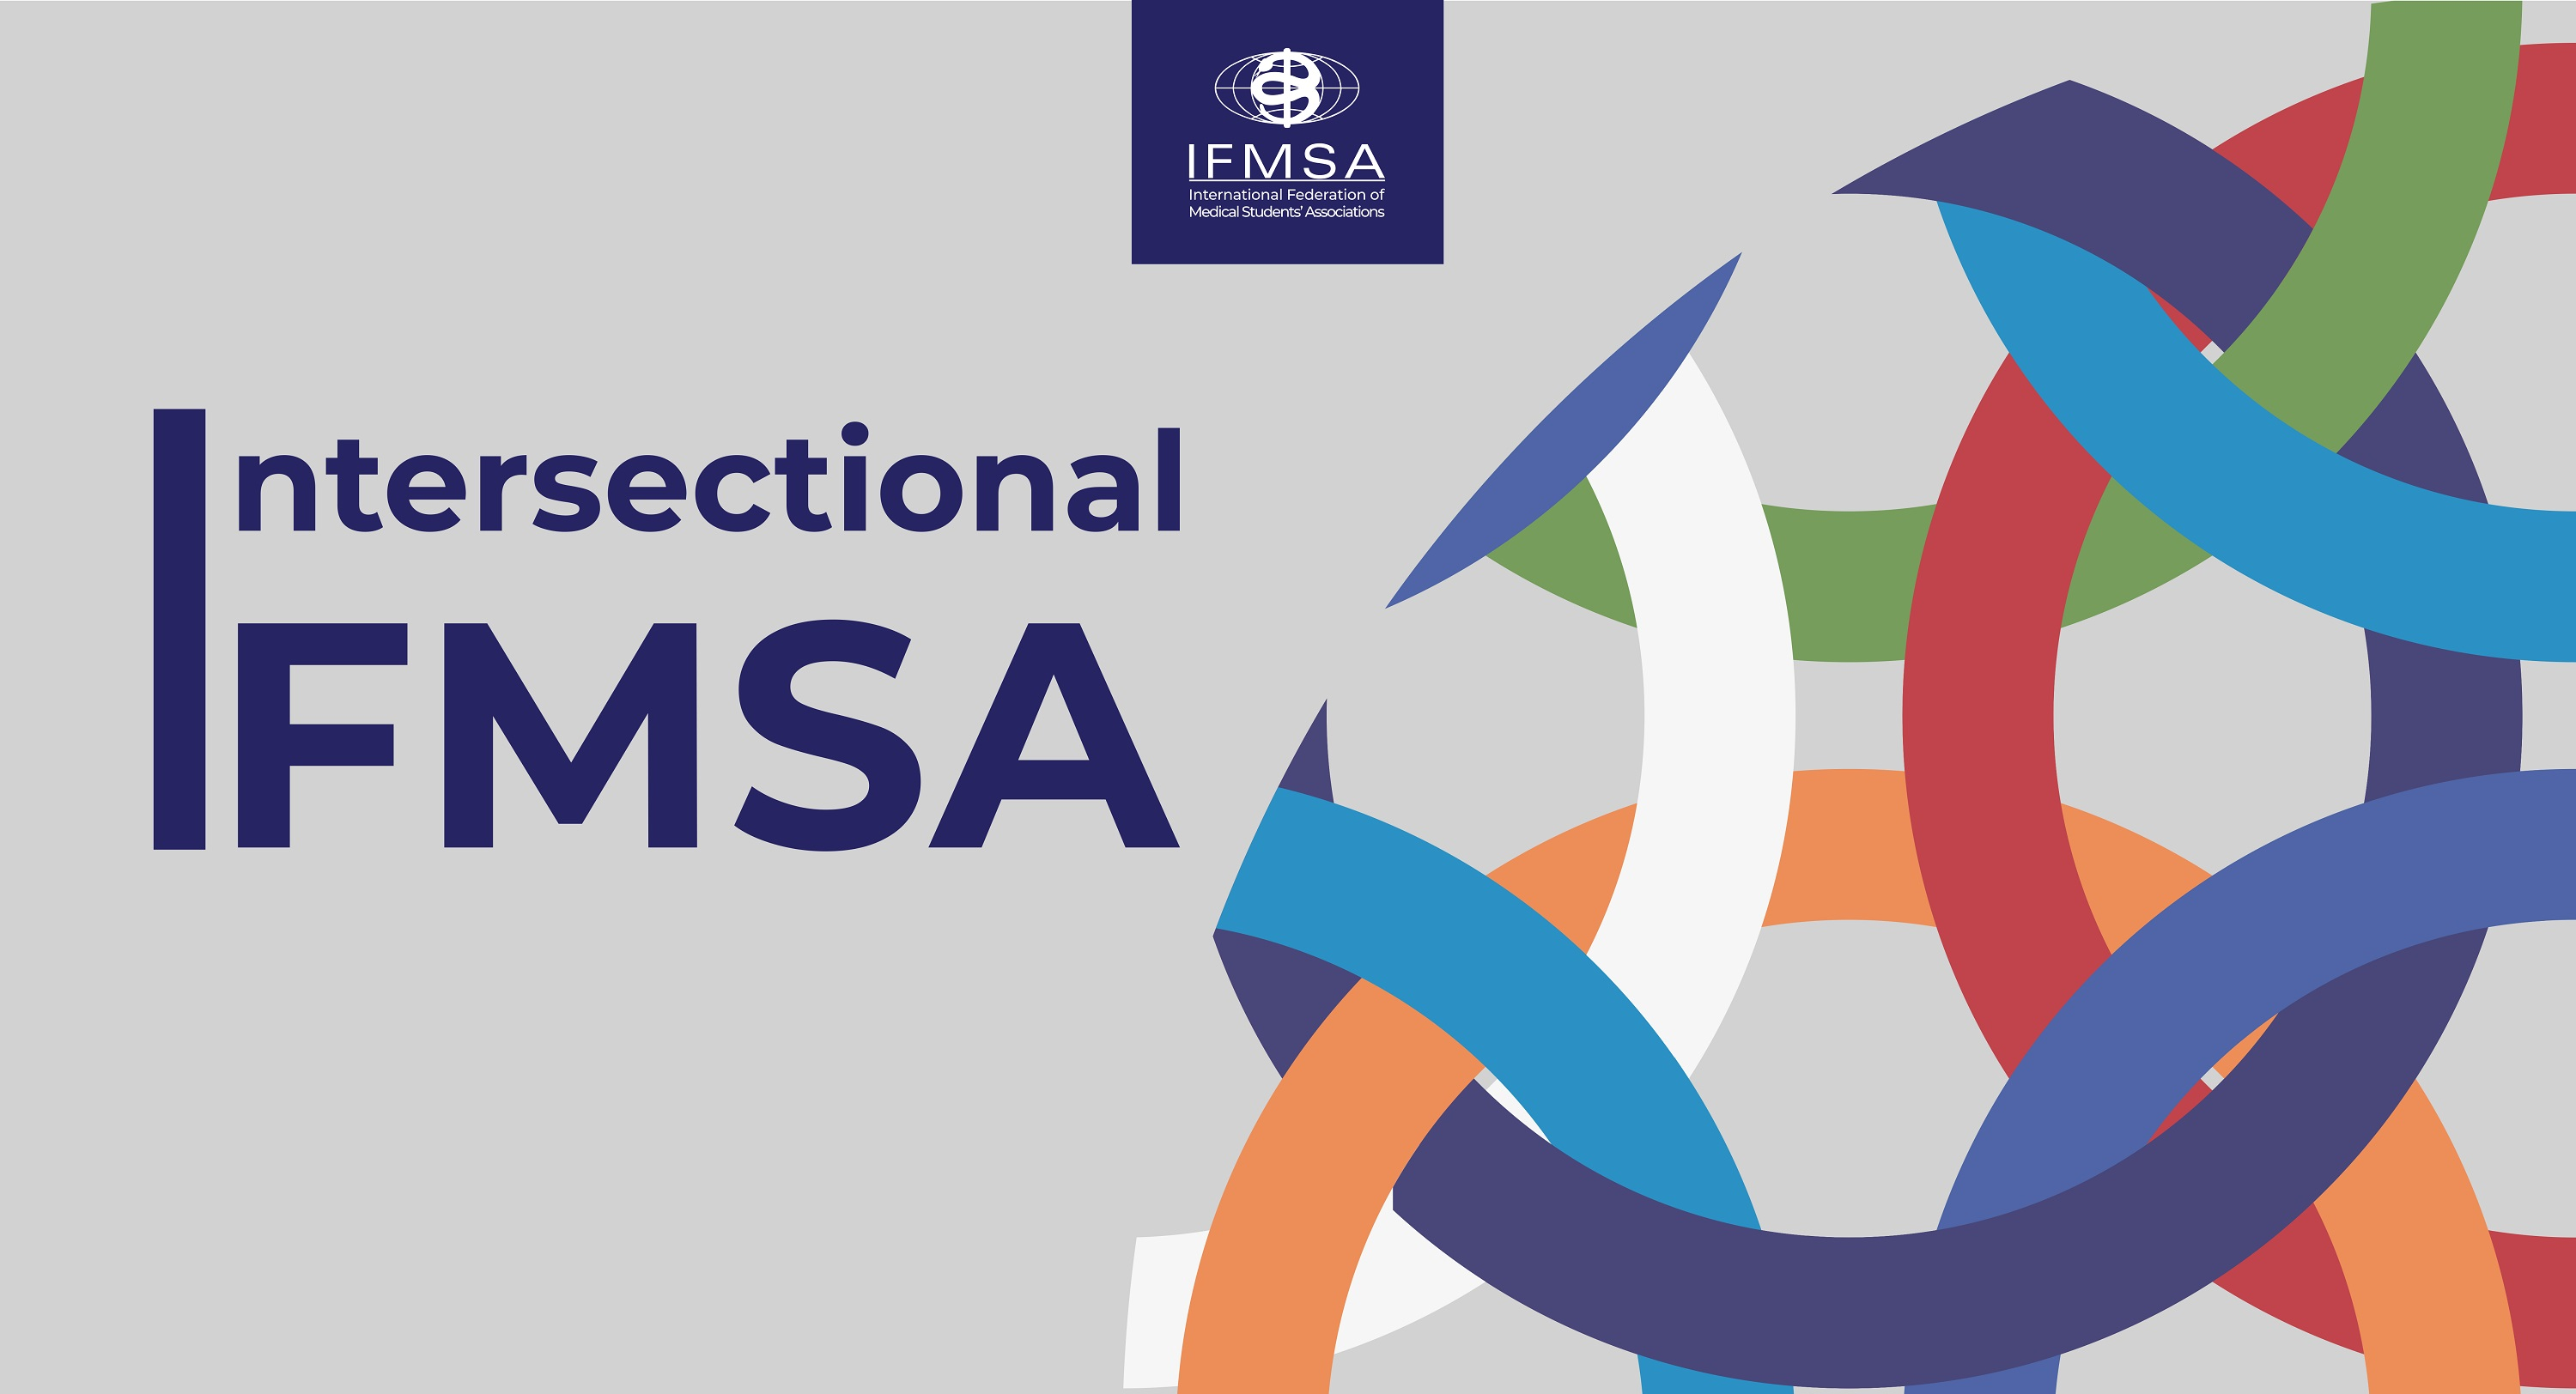 Intersectional IFMSA